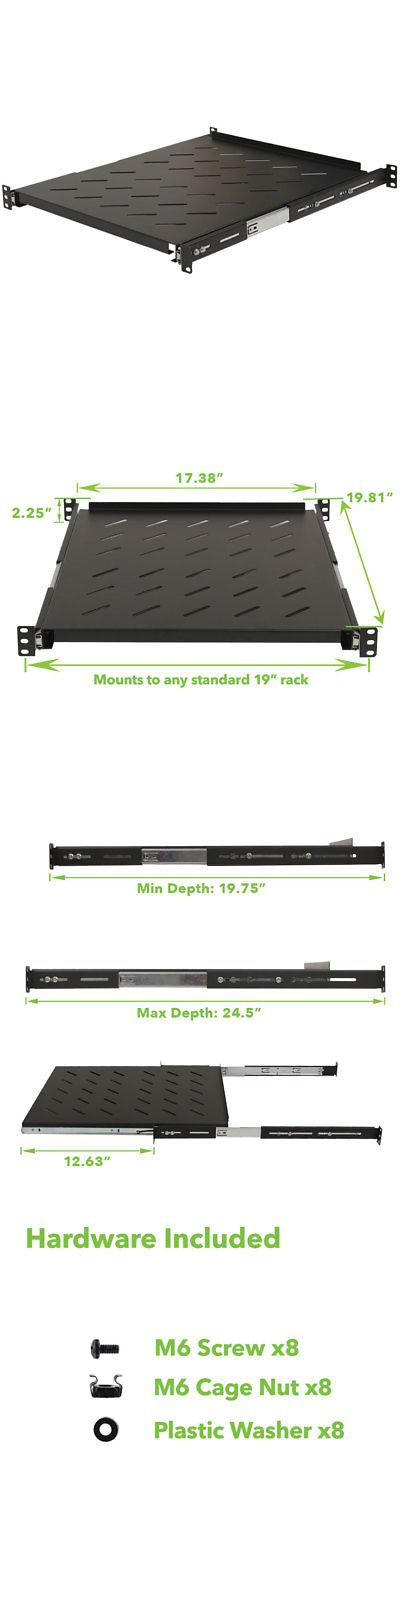 Rackmount Cabinets And Frames 51199 Sliding Rack Vented Server Shelf 1u 19 4 Post Rack Mount Adjustable 20 Wall Mount Rack Server Rack Open Frame